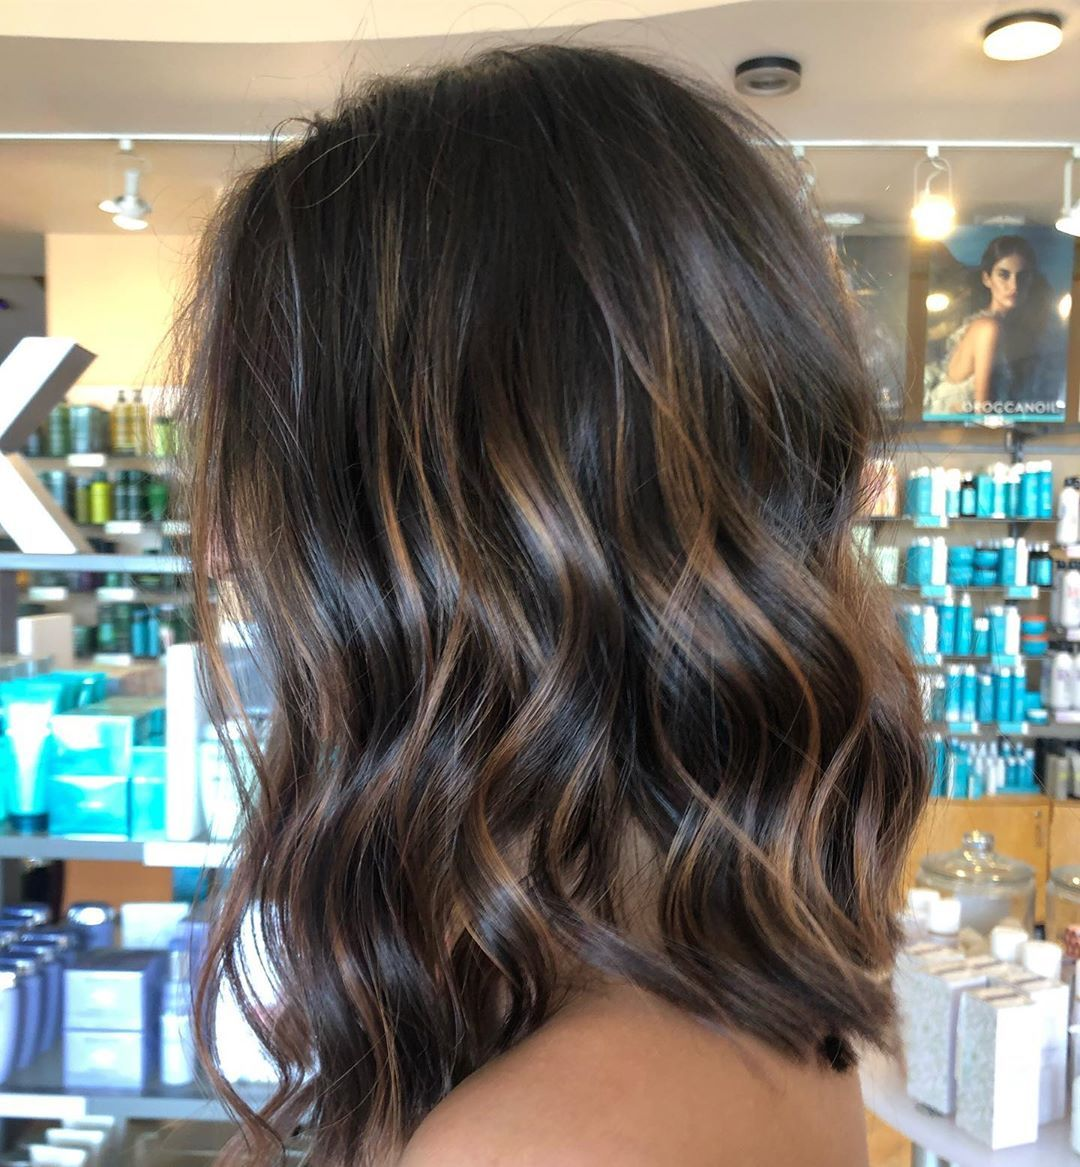 30 Stunning Summer Lob Haircuts We Love (July 2019 Collection)